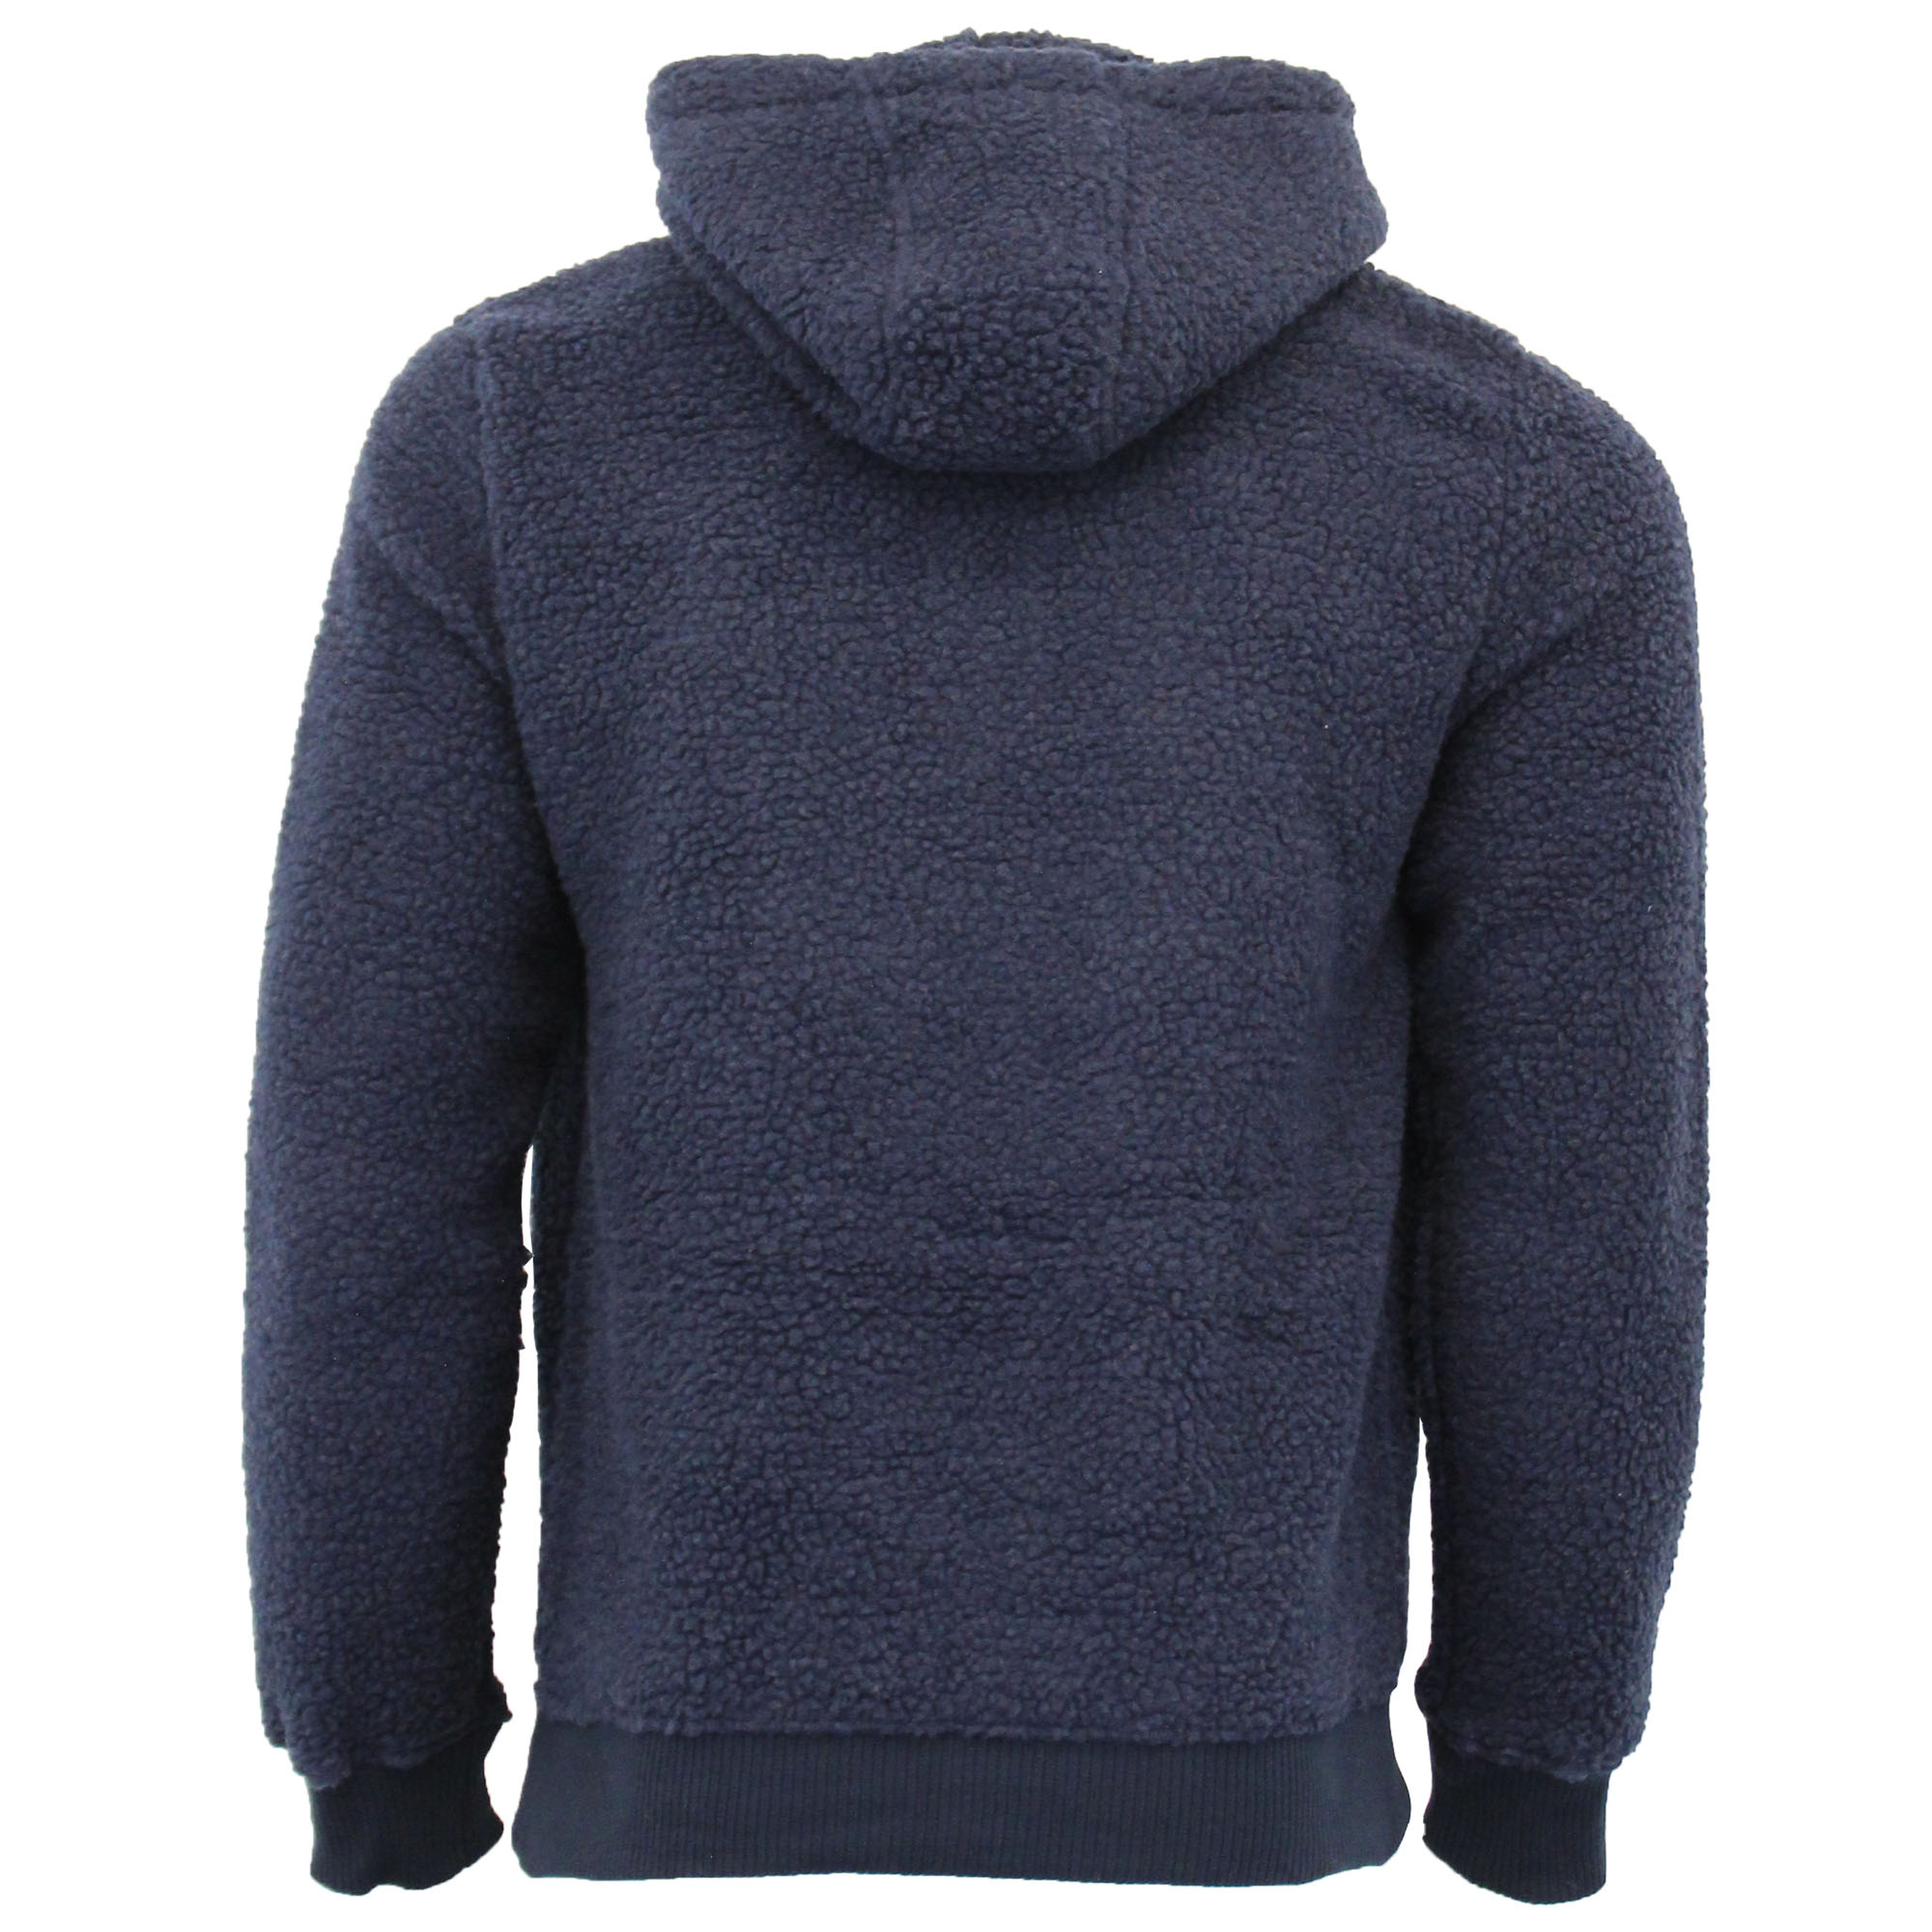 Mens-Borg-Sherpa-Fleece-Sweatshirt-Brave-Soul-DAIM-Over-The-Head-Hooded-Top-Warm thumbnail 11